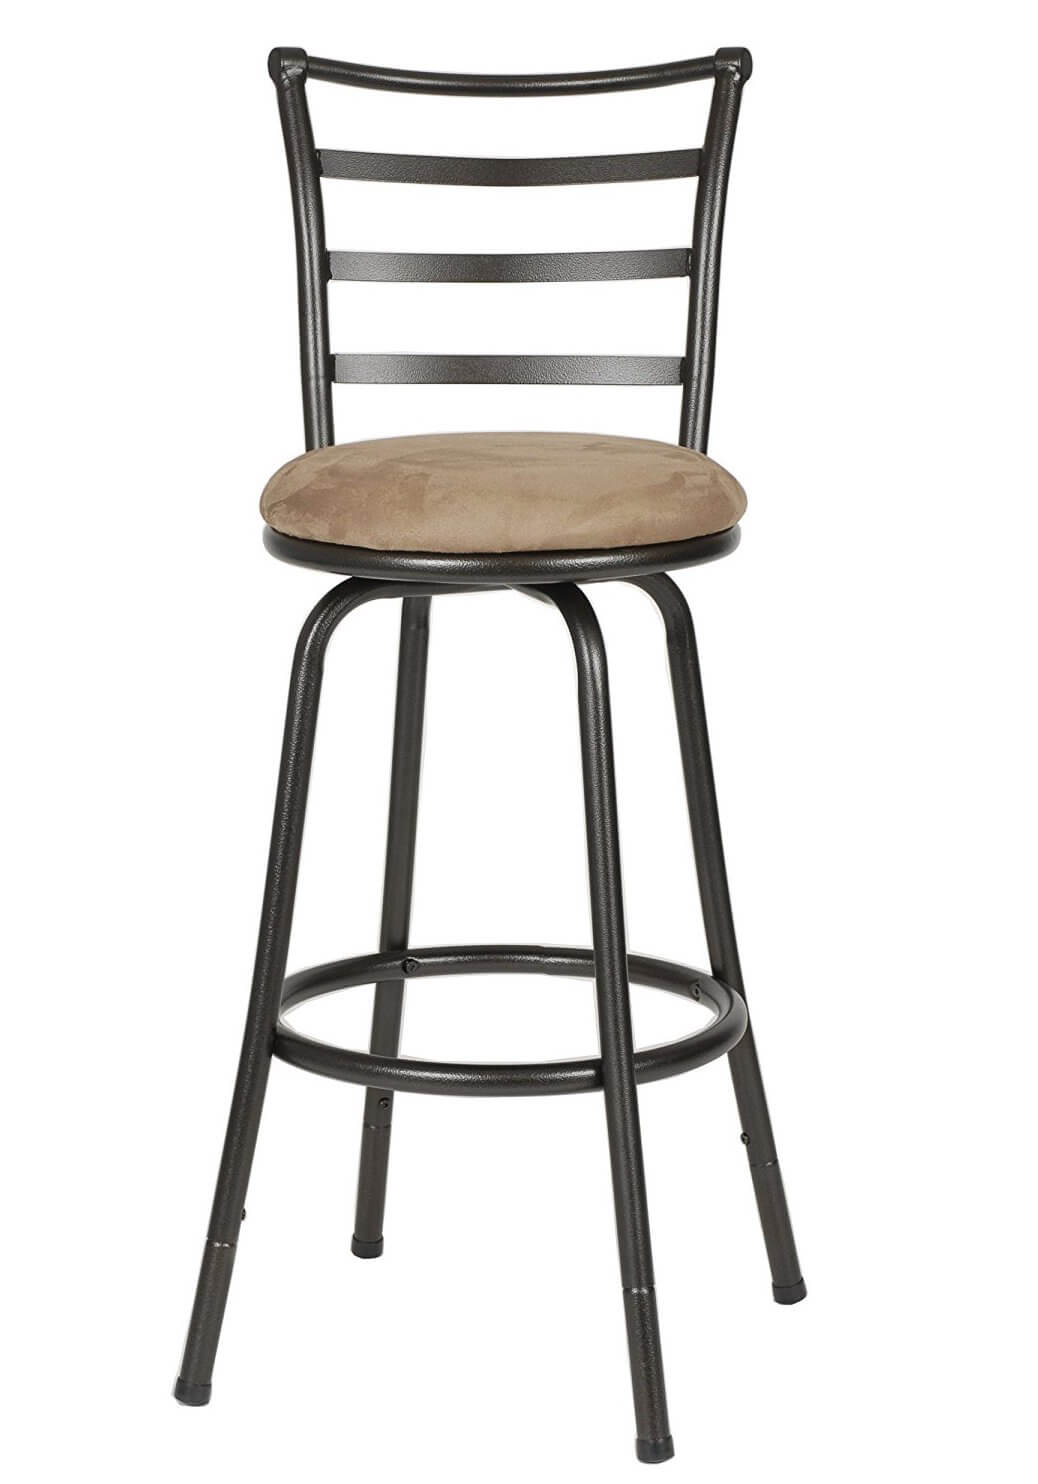 Round-Seat Metal Bar Stool